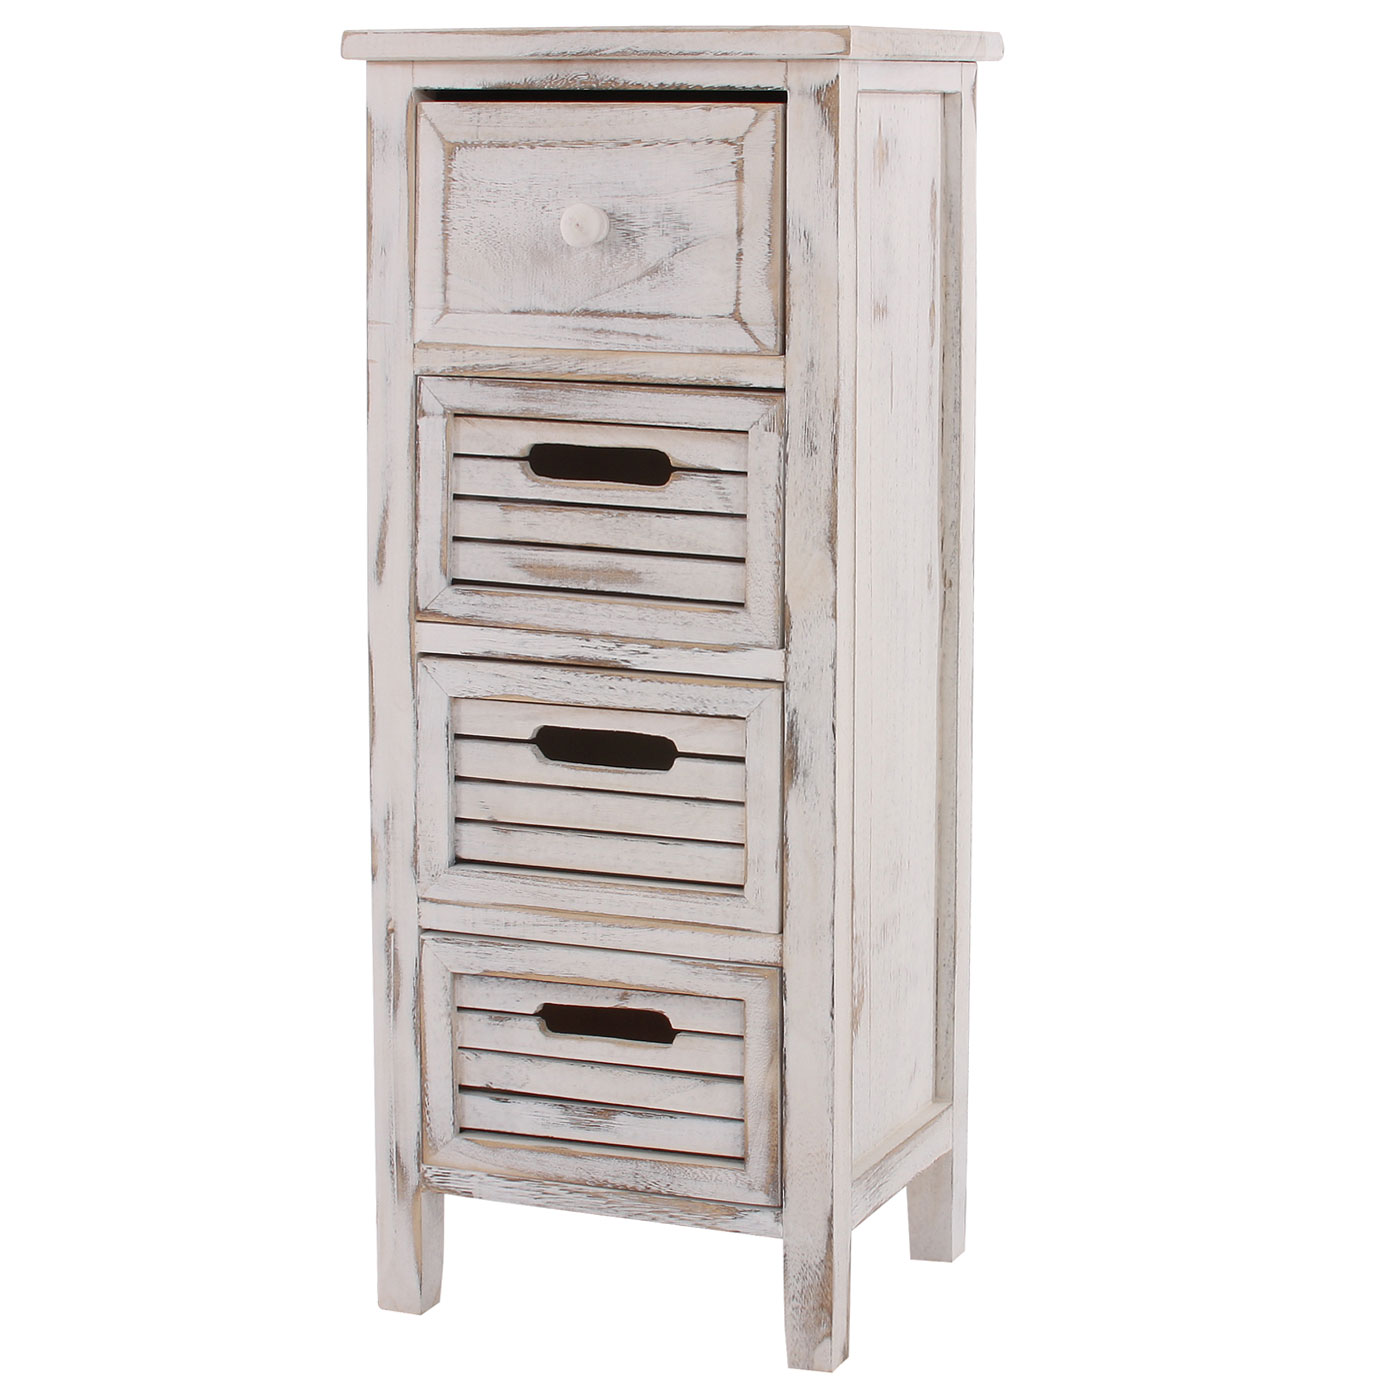 schrank kommode 74x30x25cm shabby look vintage wei. Black Bedroom Furniture Sets. Home Design Ideas